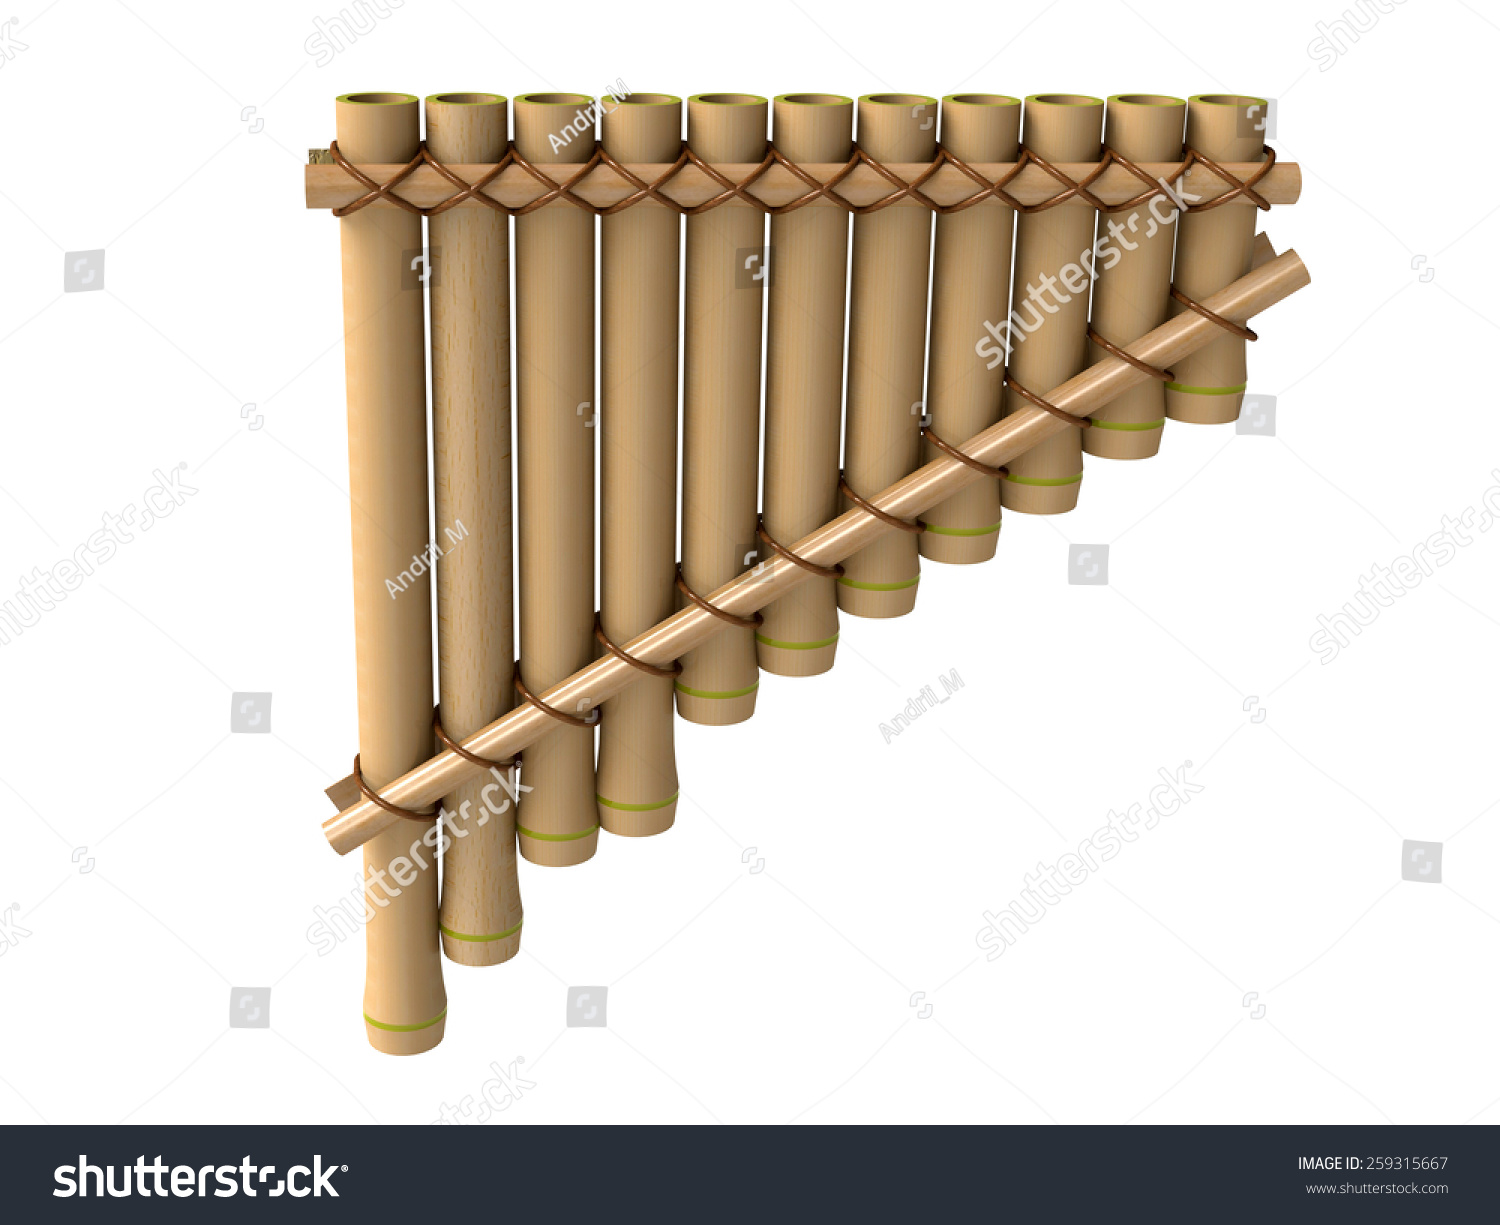 learn how to play pan flute